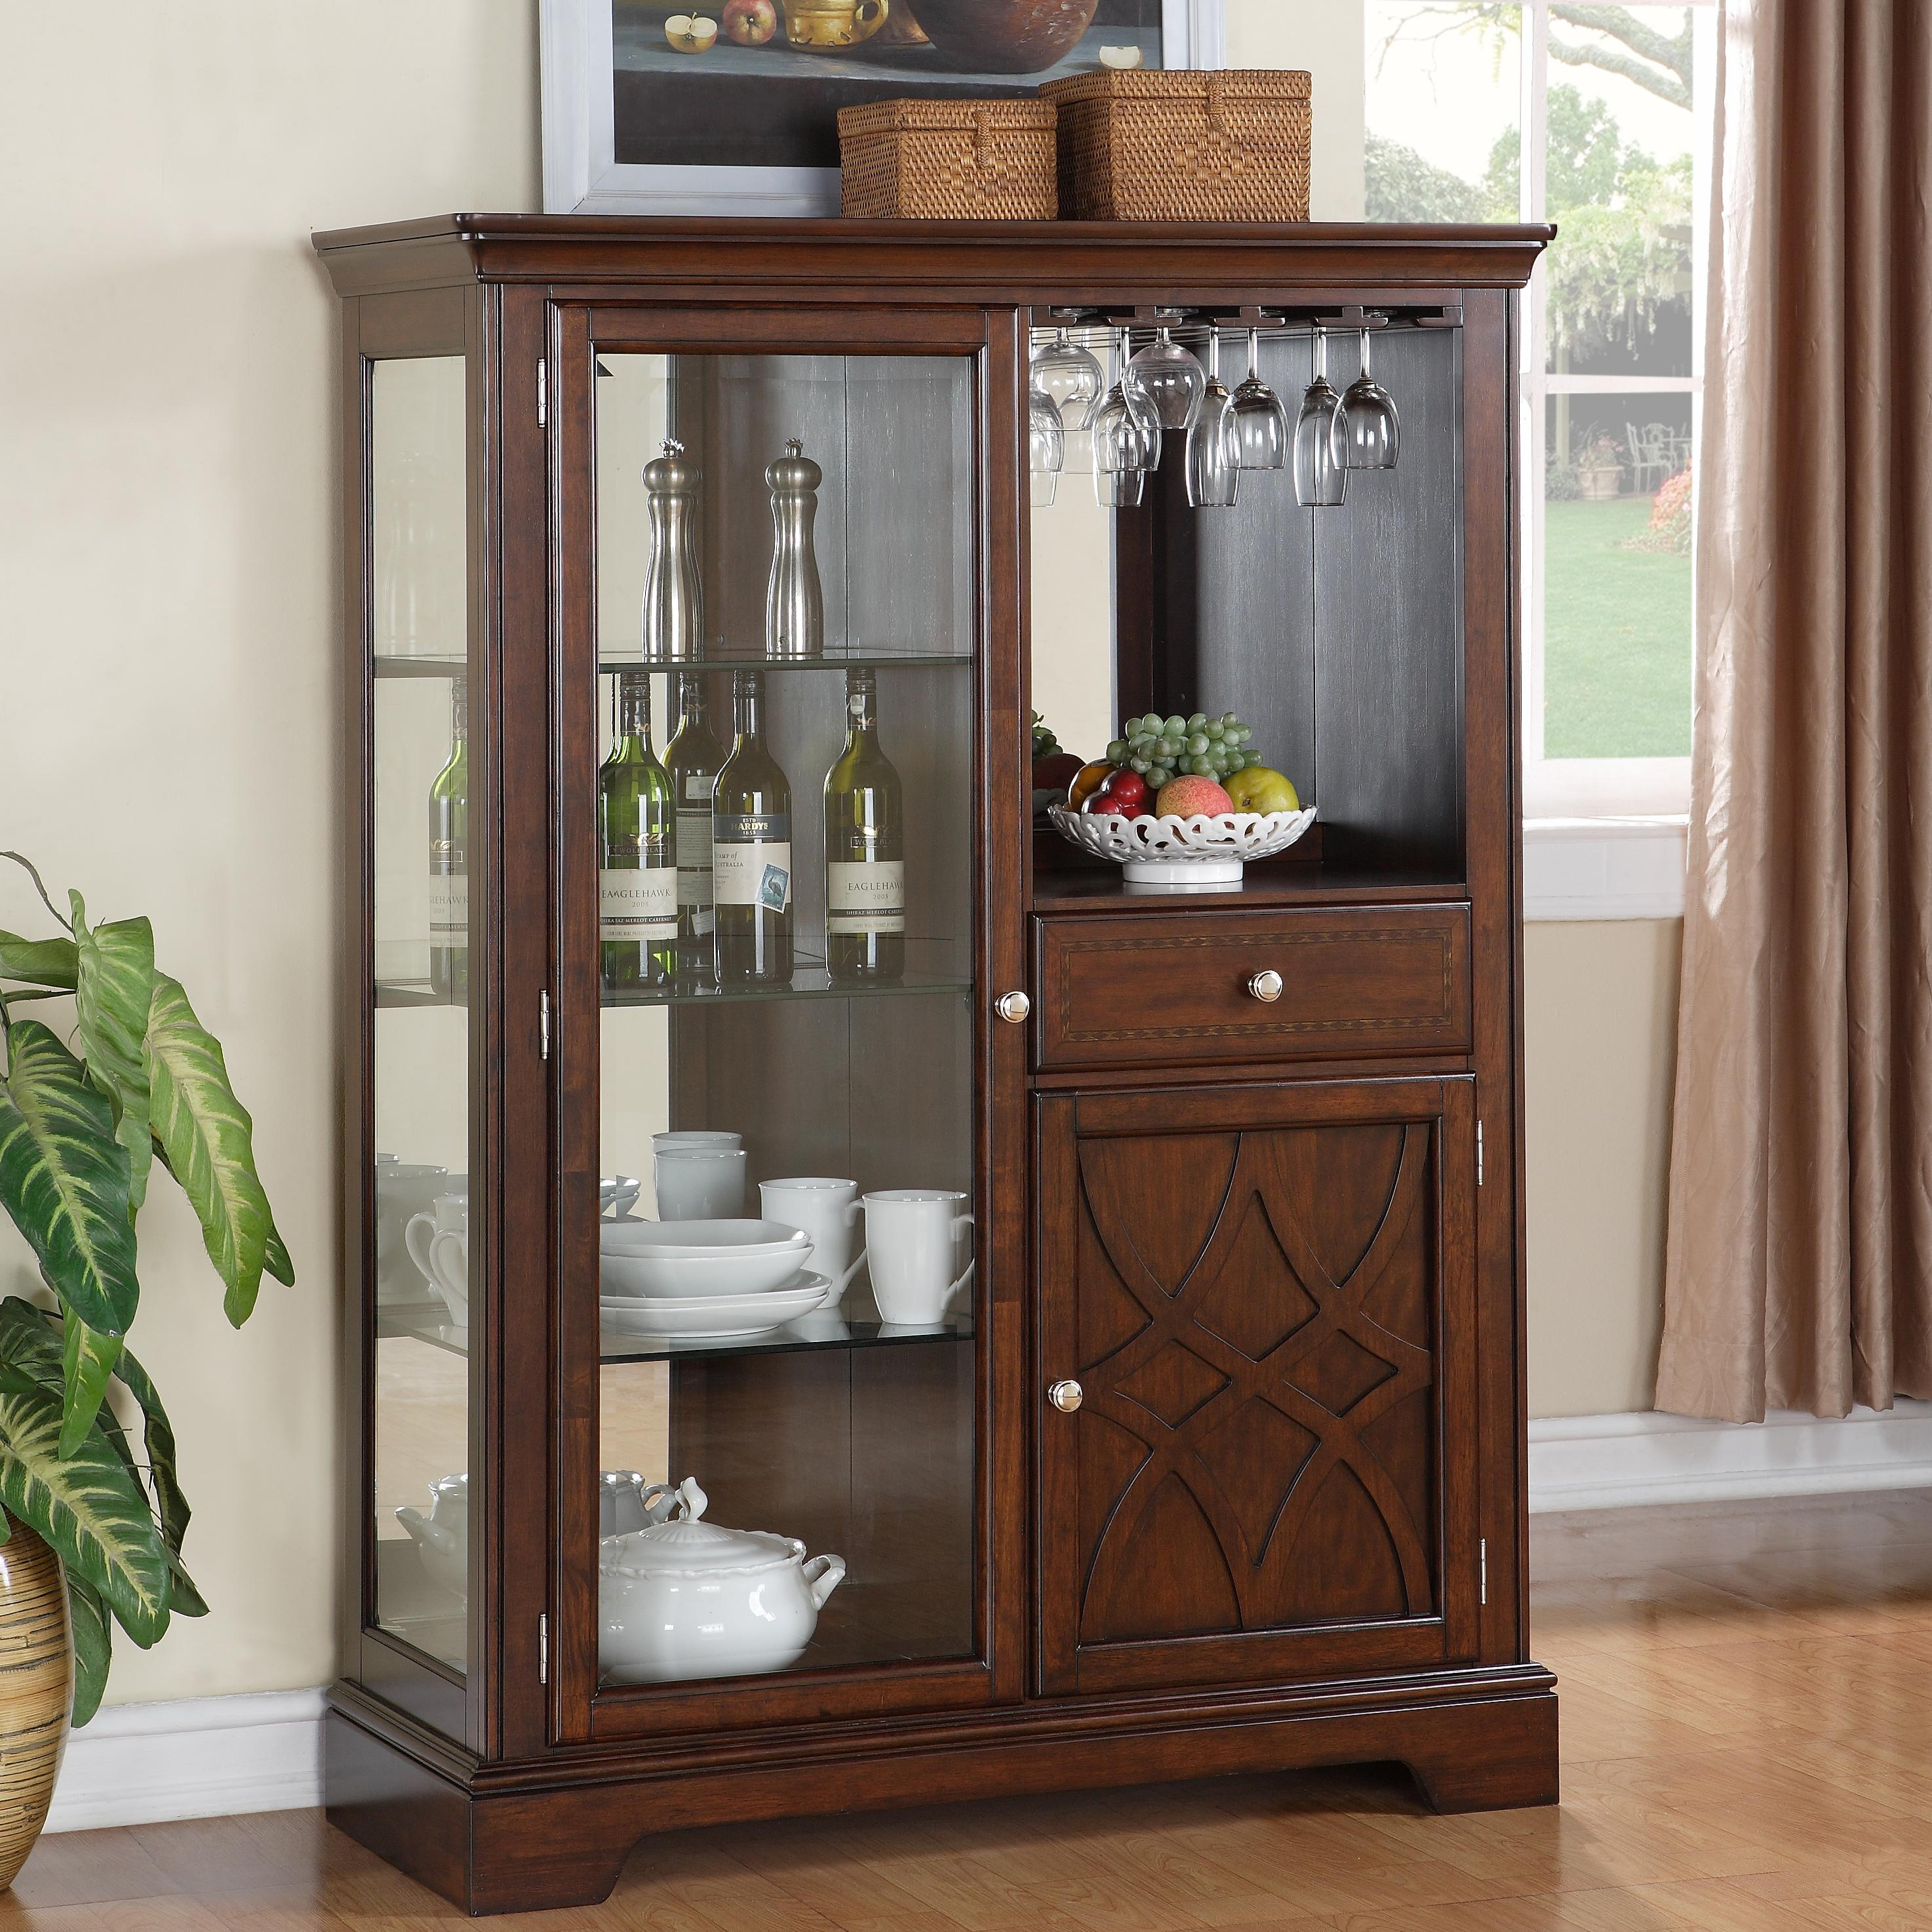 New Standard Furniture Woodmont 2 Door Display Curio Cabinet with 1  HT44